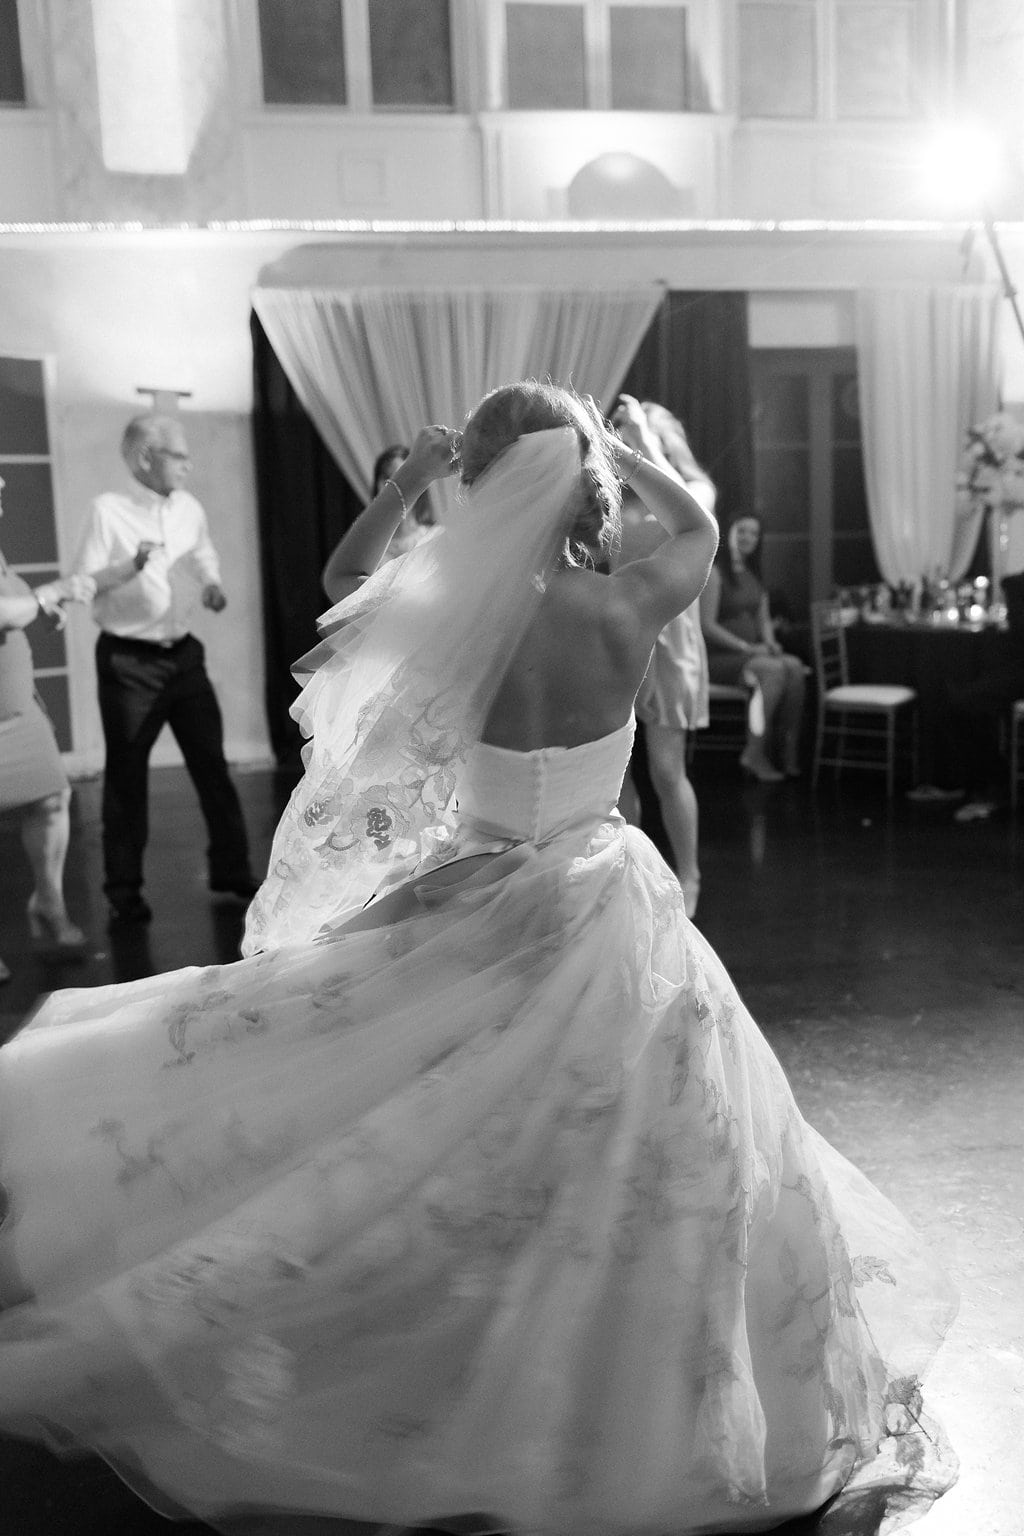 Bride dancing with guests on the dance floor